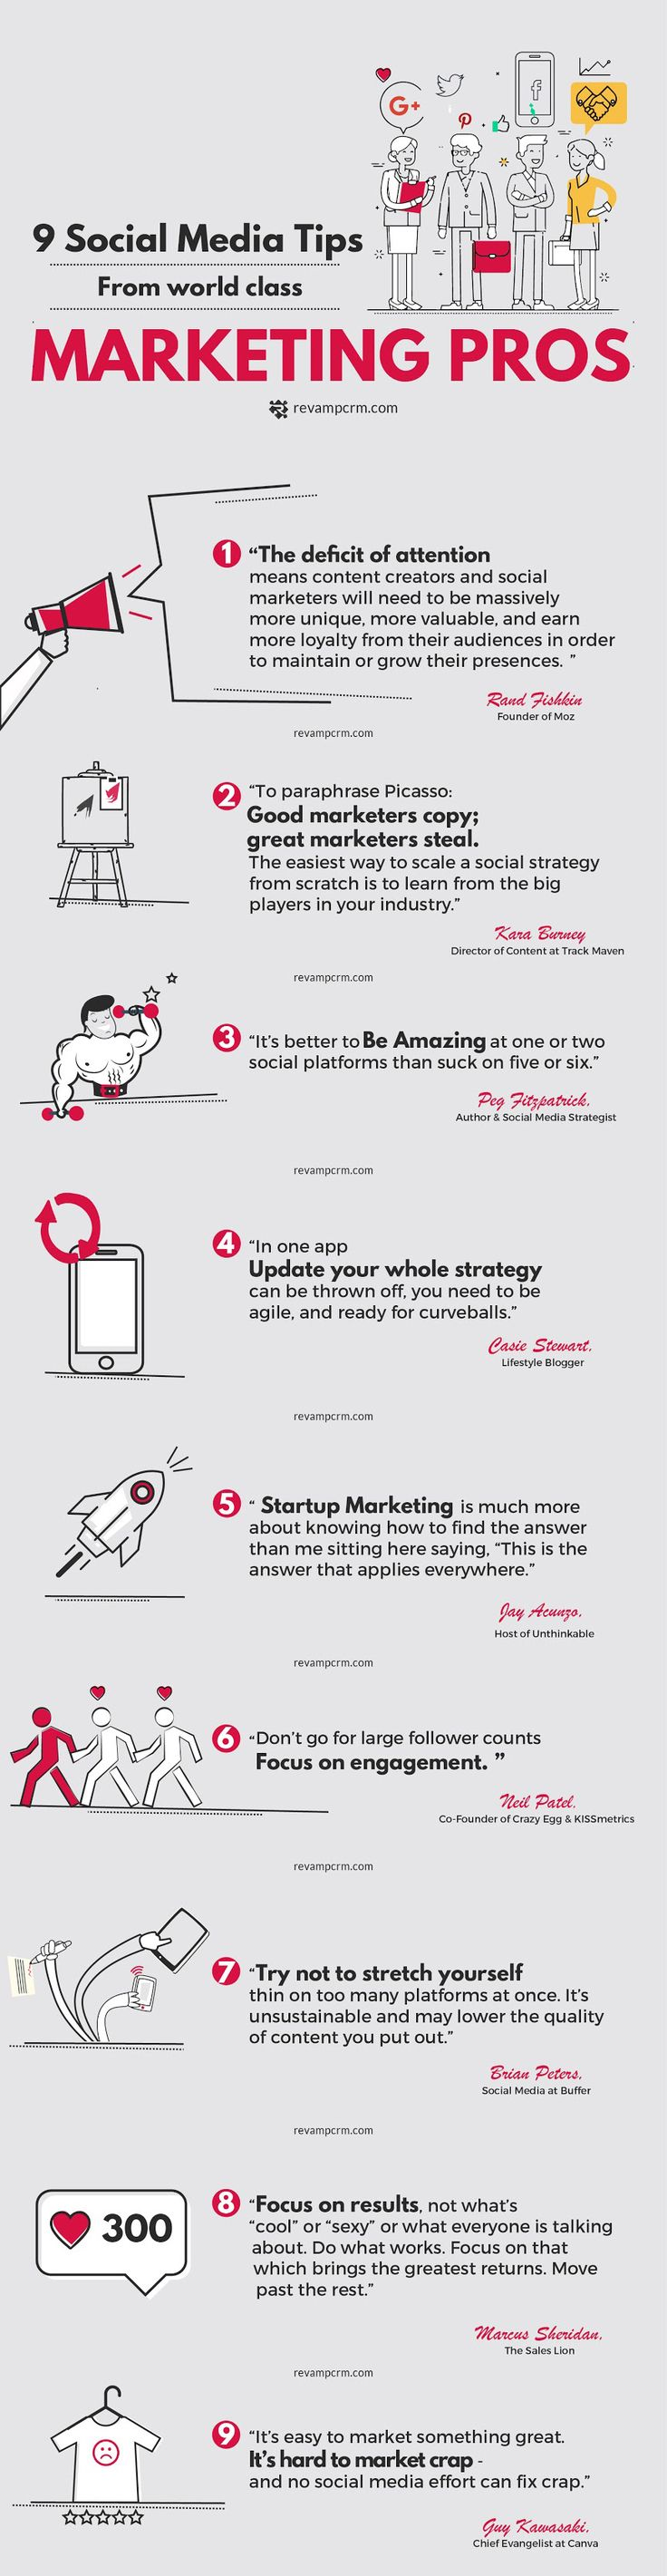 Social Media Marketing Tips Infographic